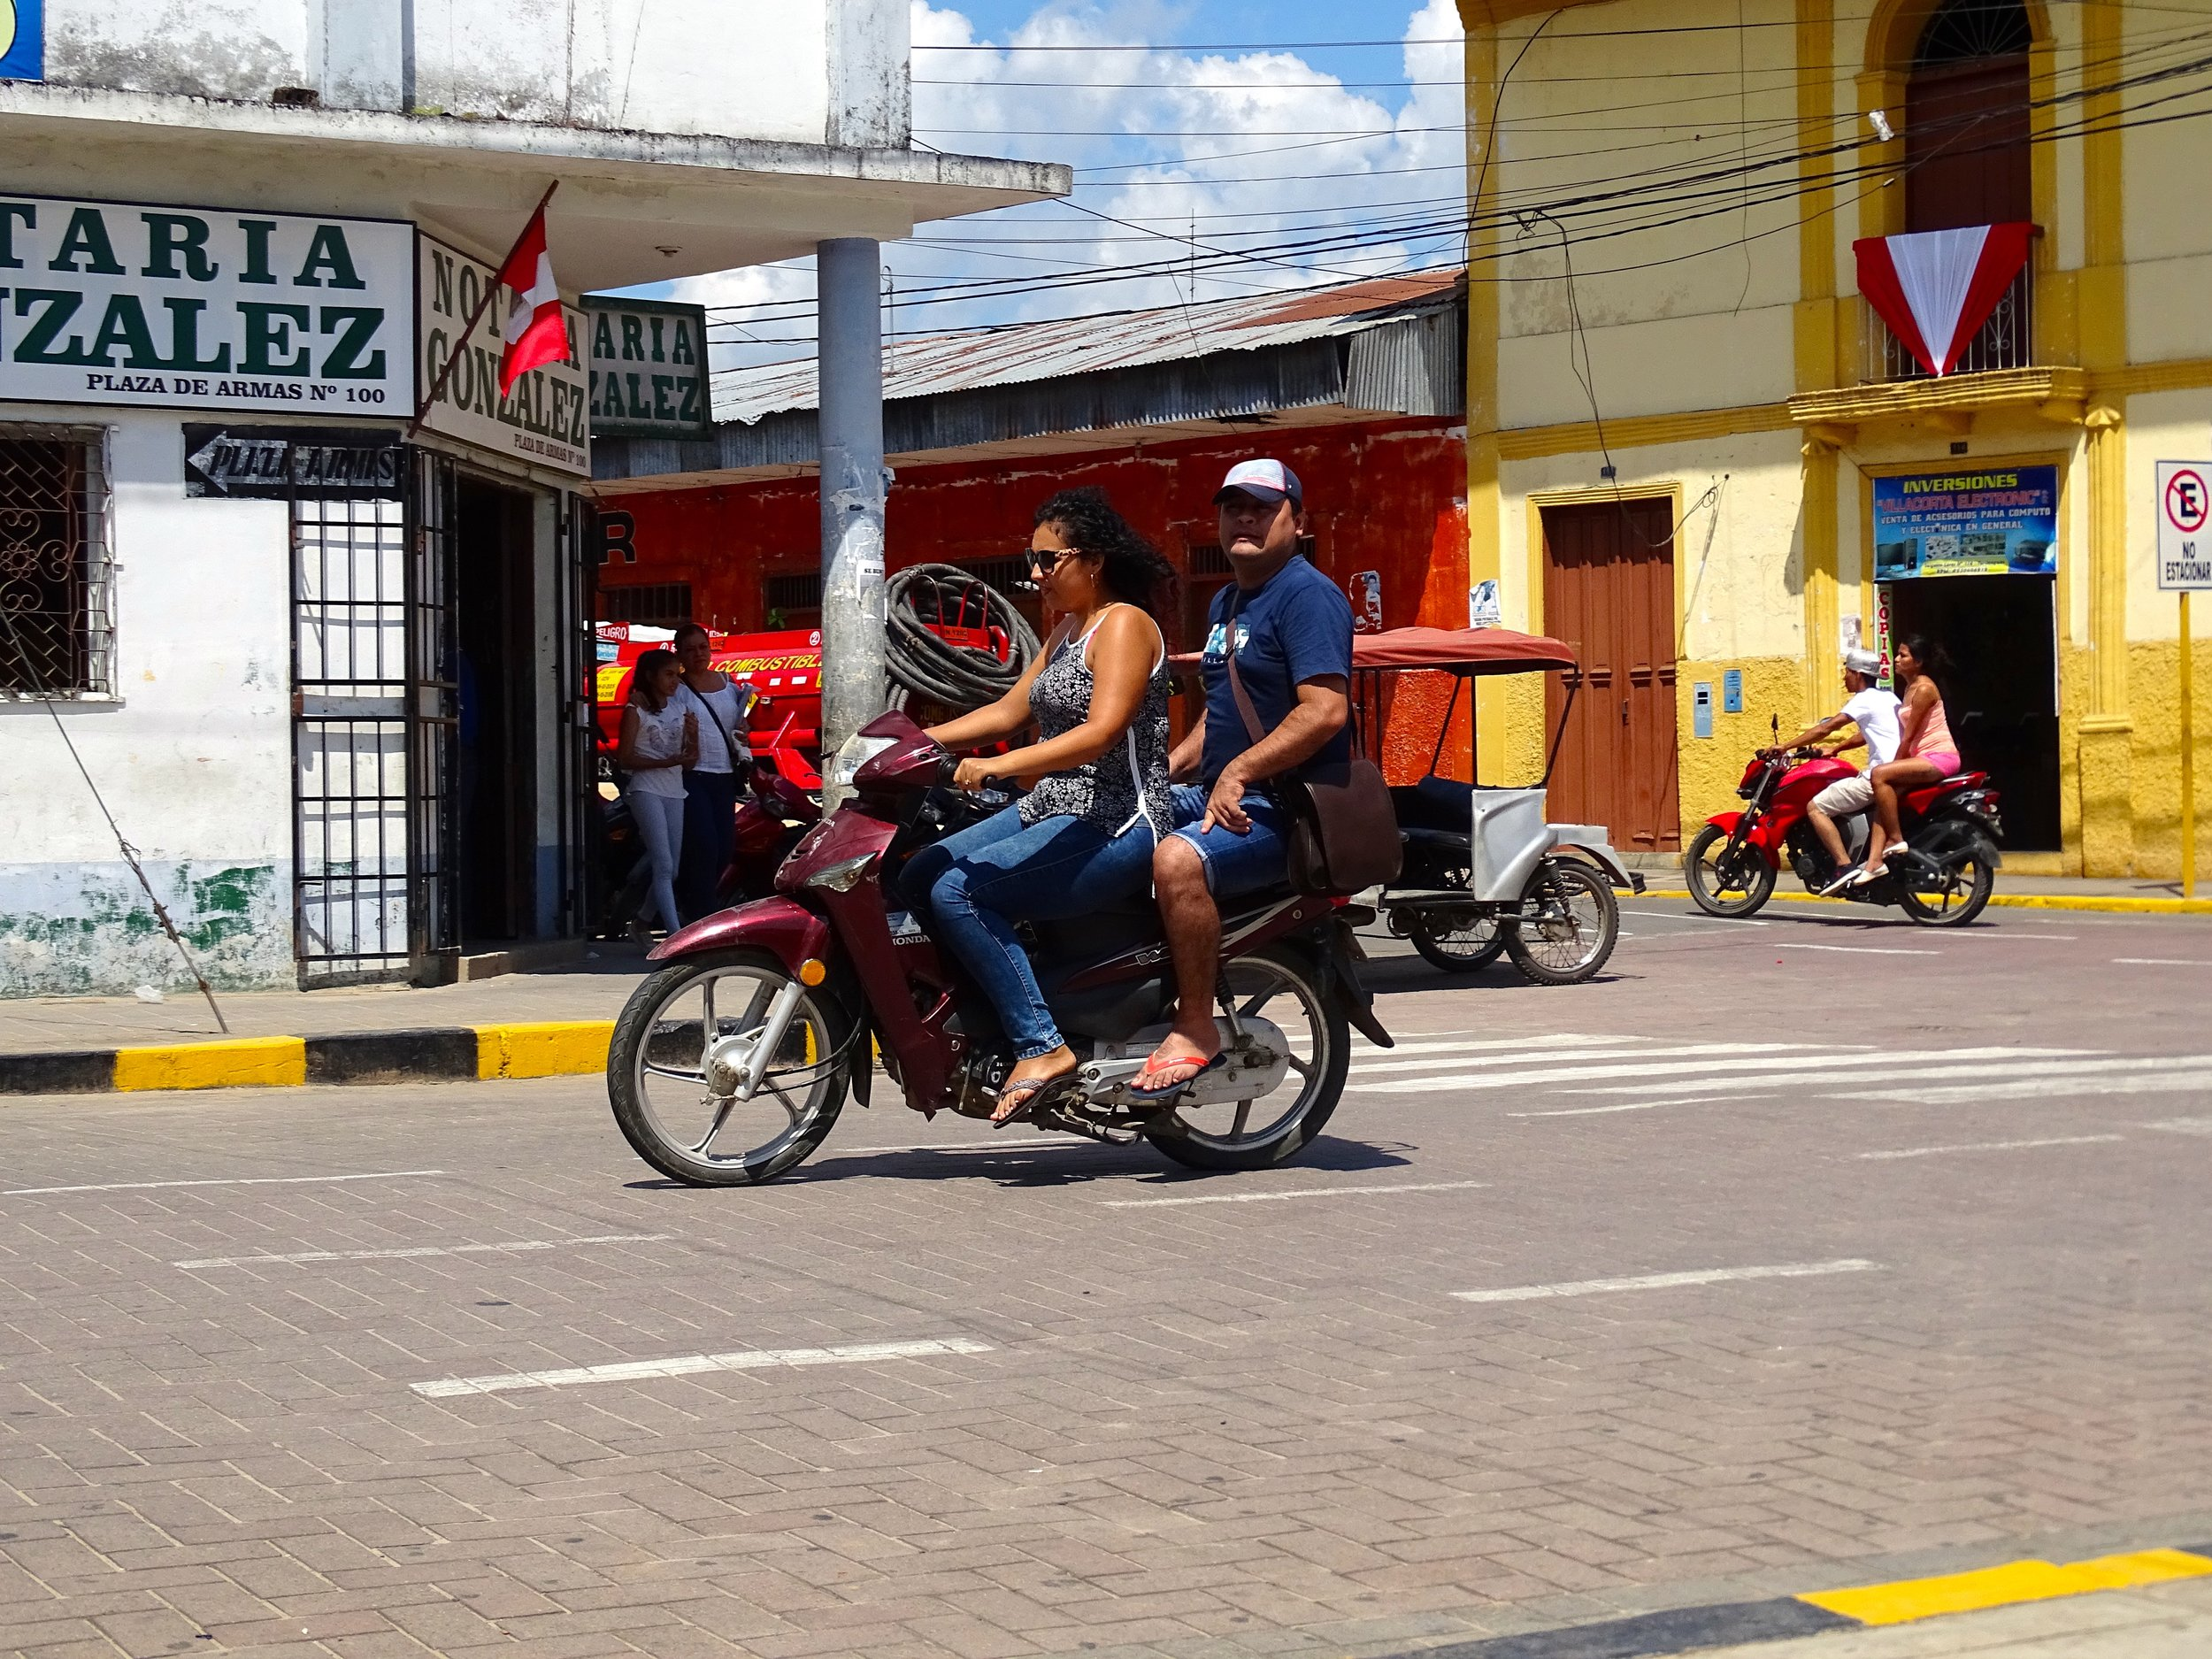 And in opposition to the machismo image, there seems to be no stigma attached to being the passenger and not the rider in control.